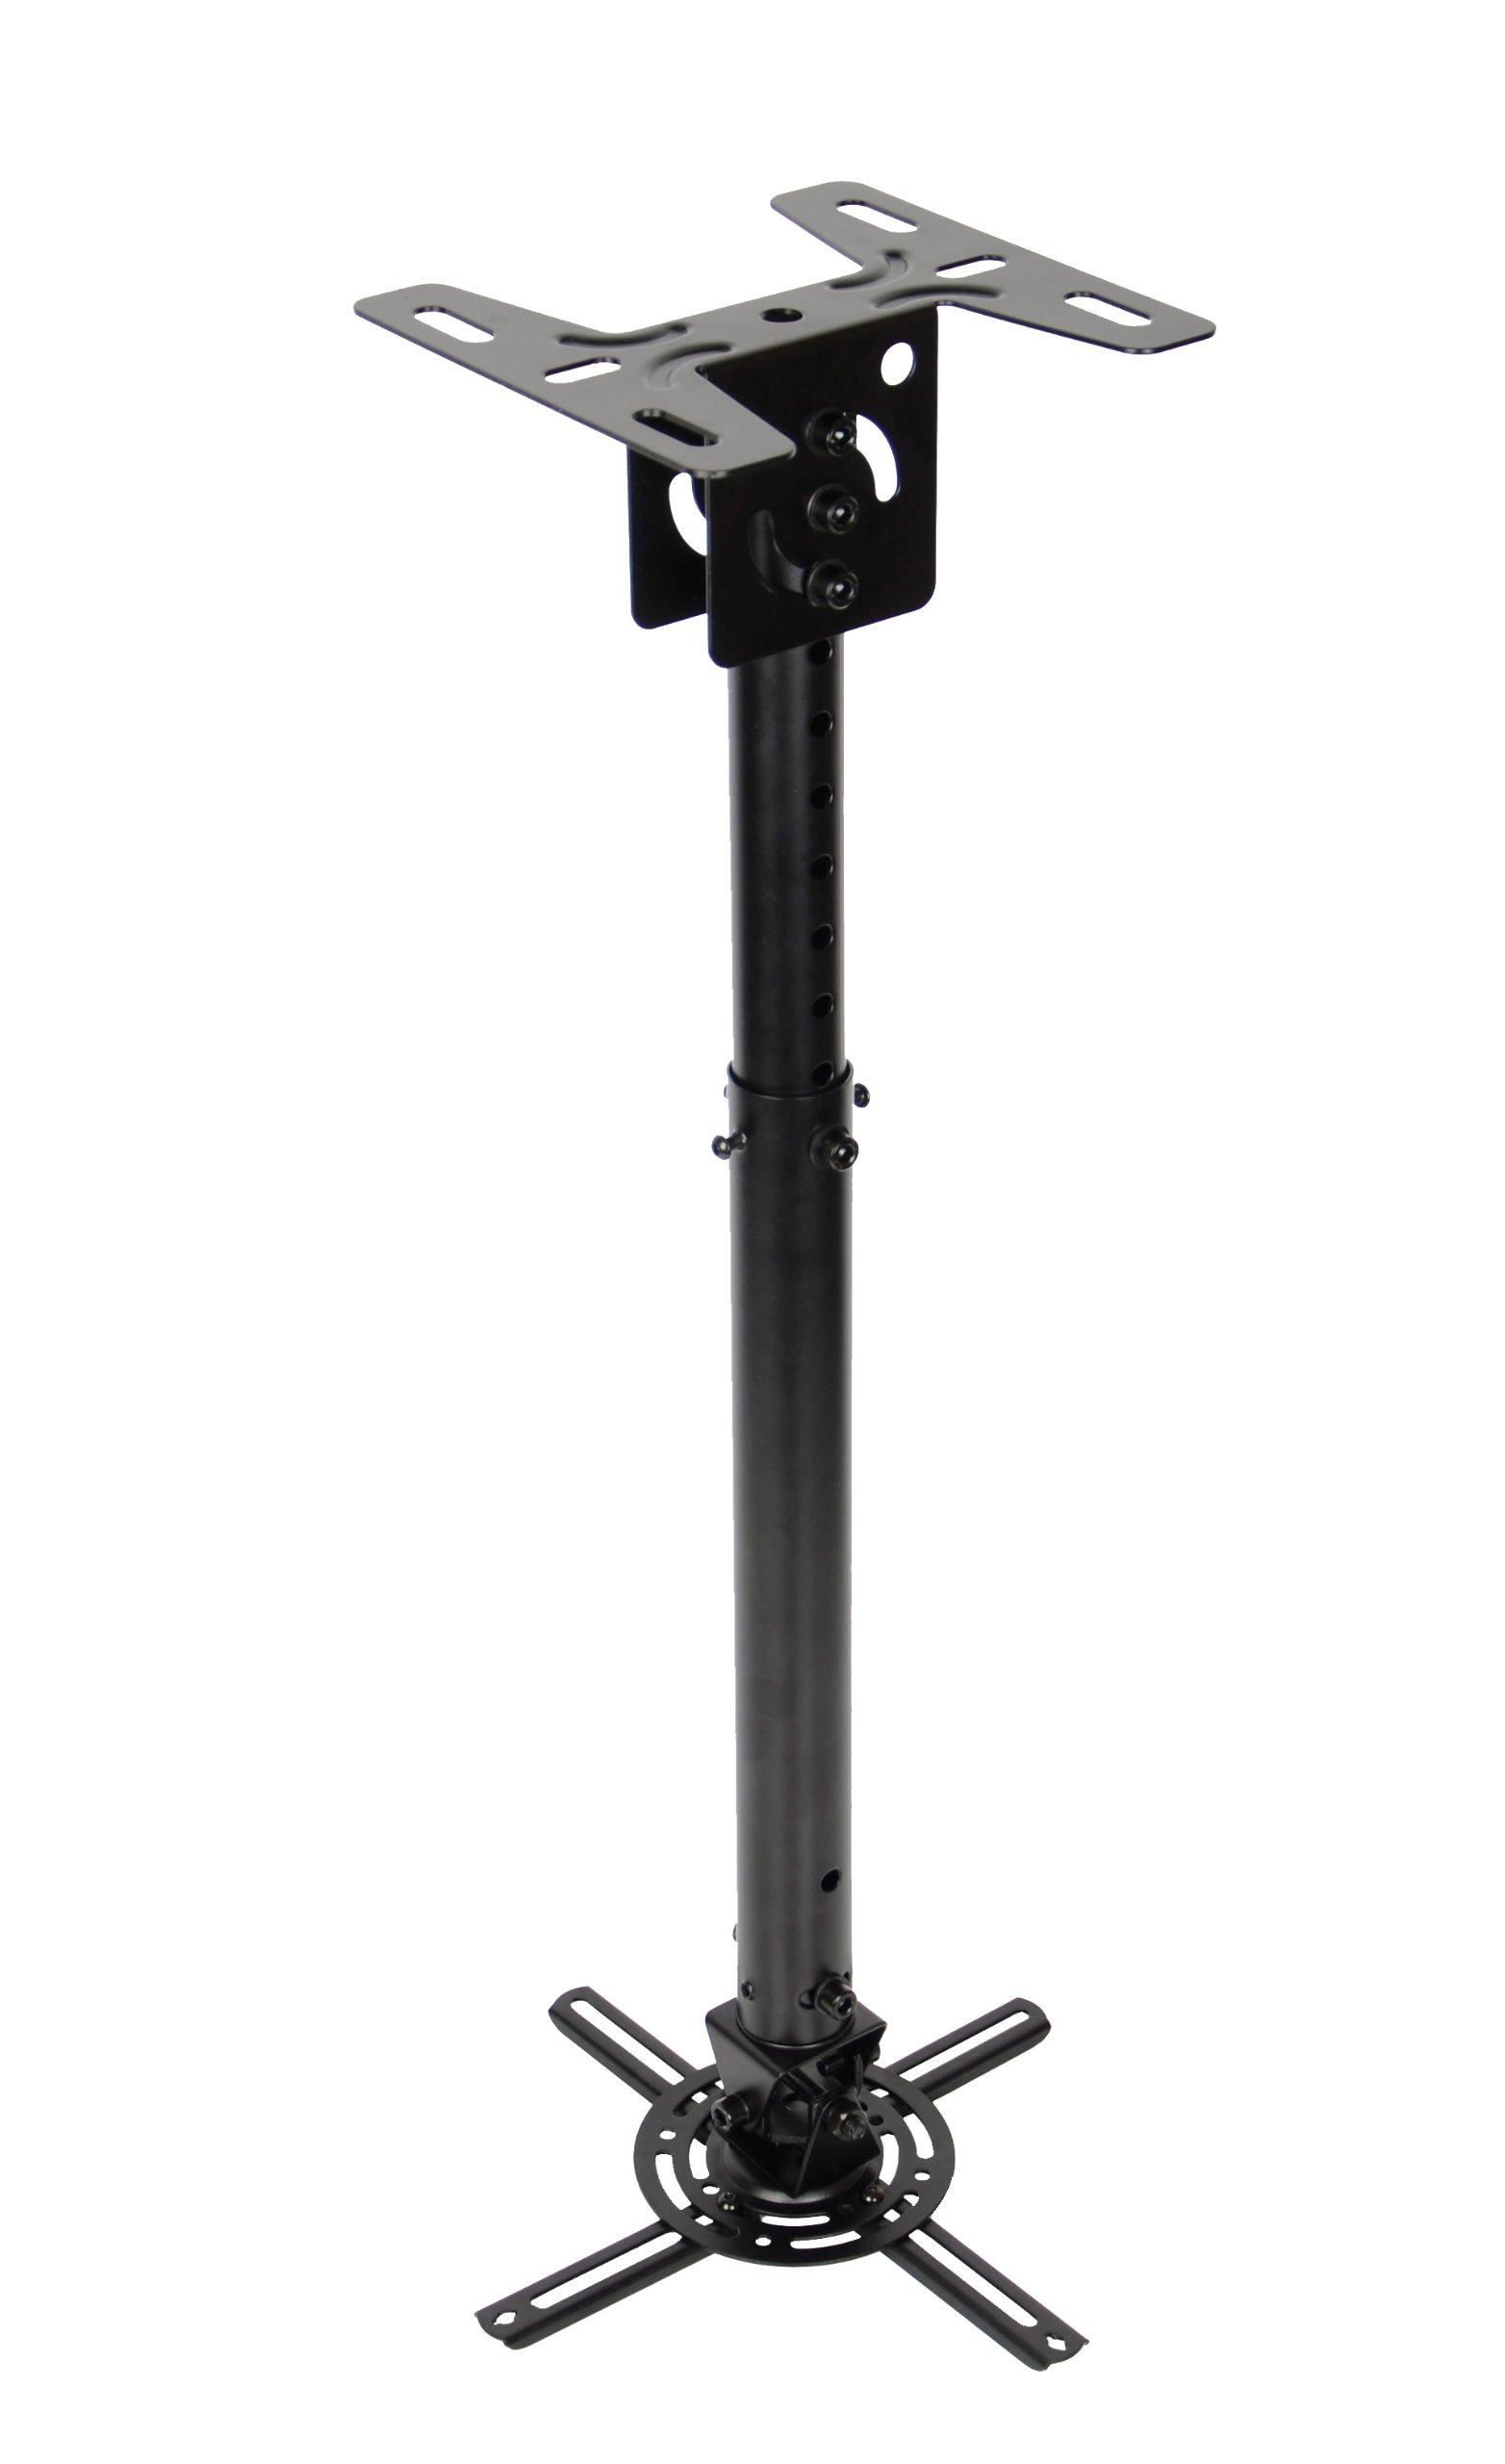 OPTOMA TECHNOLOGY OCM815B Low Profile Universal Ceiling Mount with Extension Poles Projector Accessory